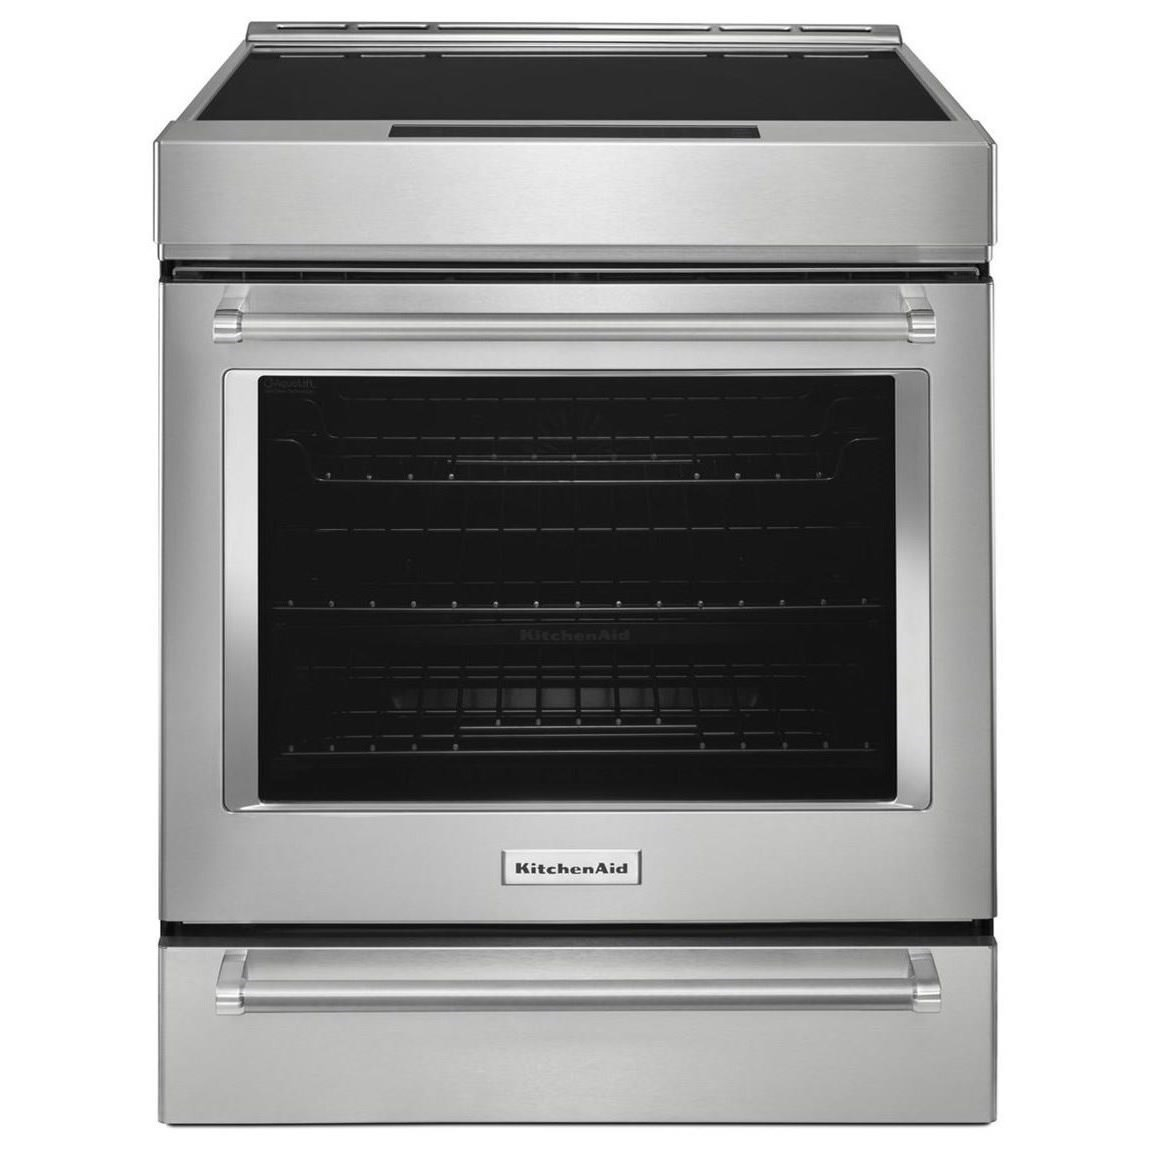 KitchenAid KitchenAid Electric Ranges30 Inch 4 Element Induction Convection  Range ...